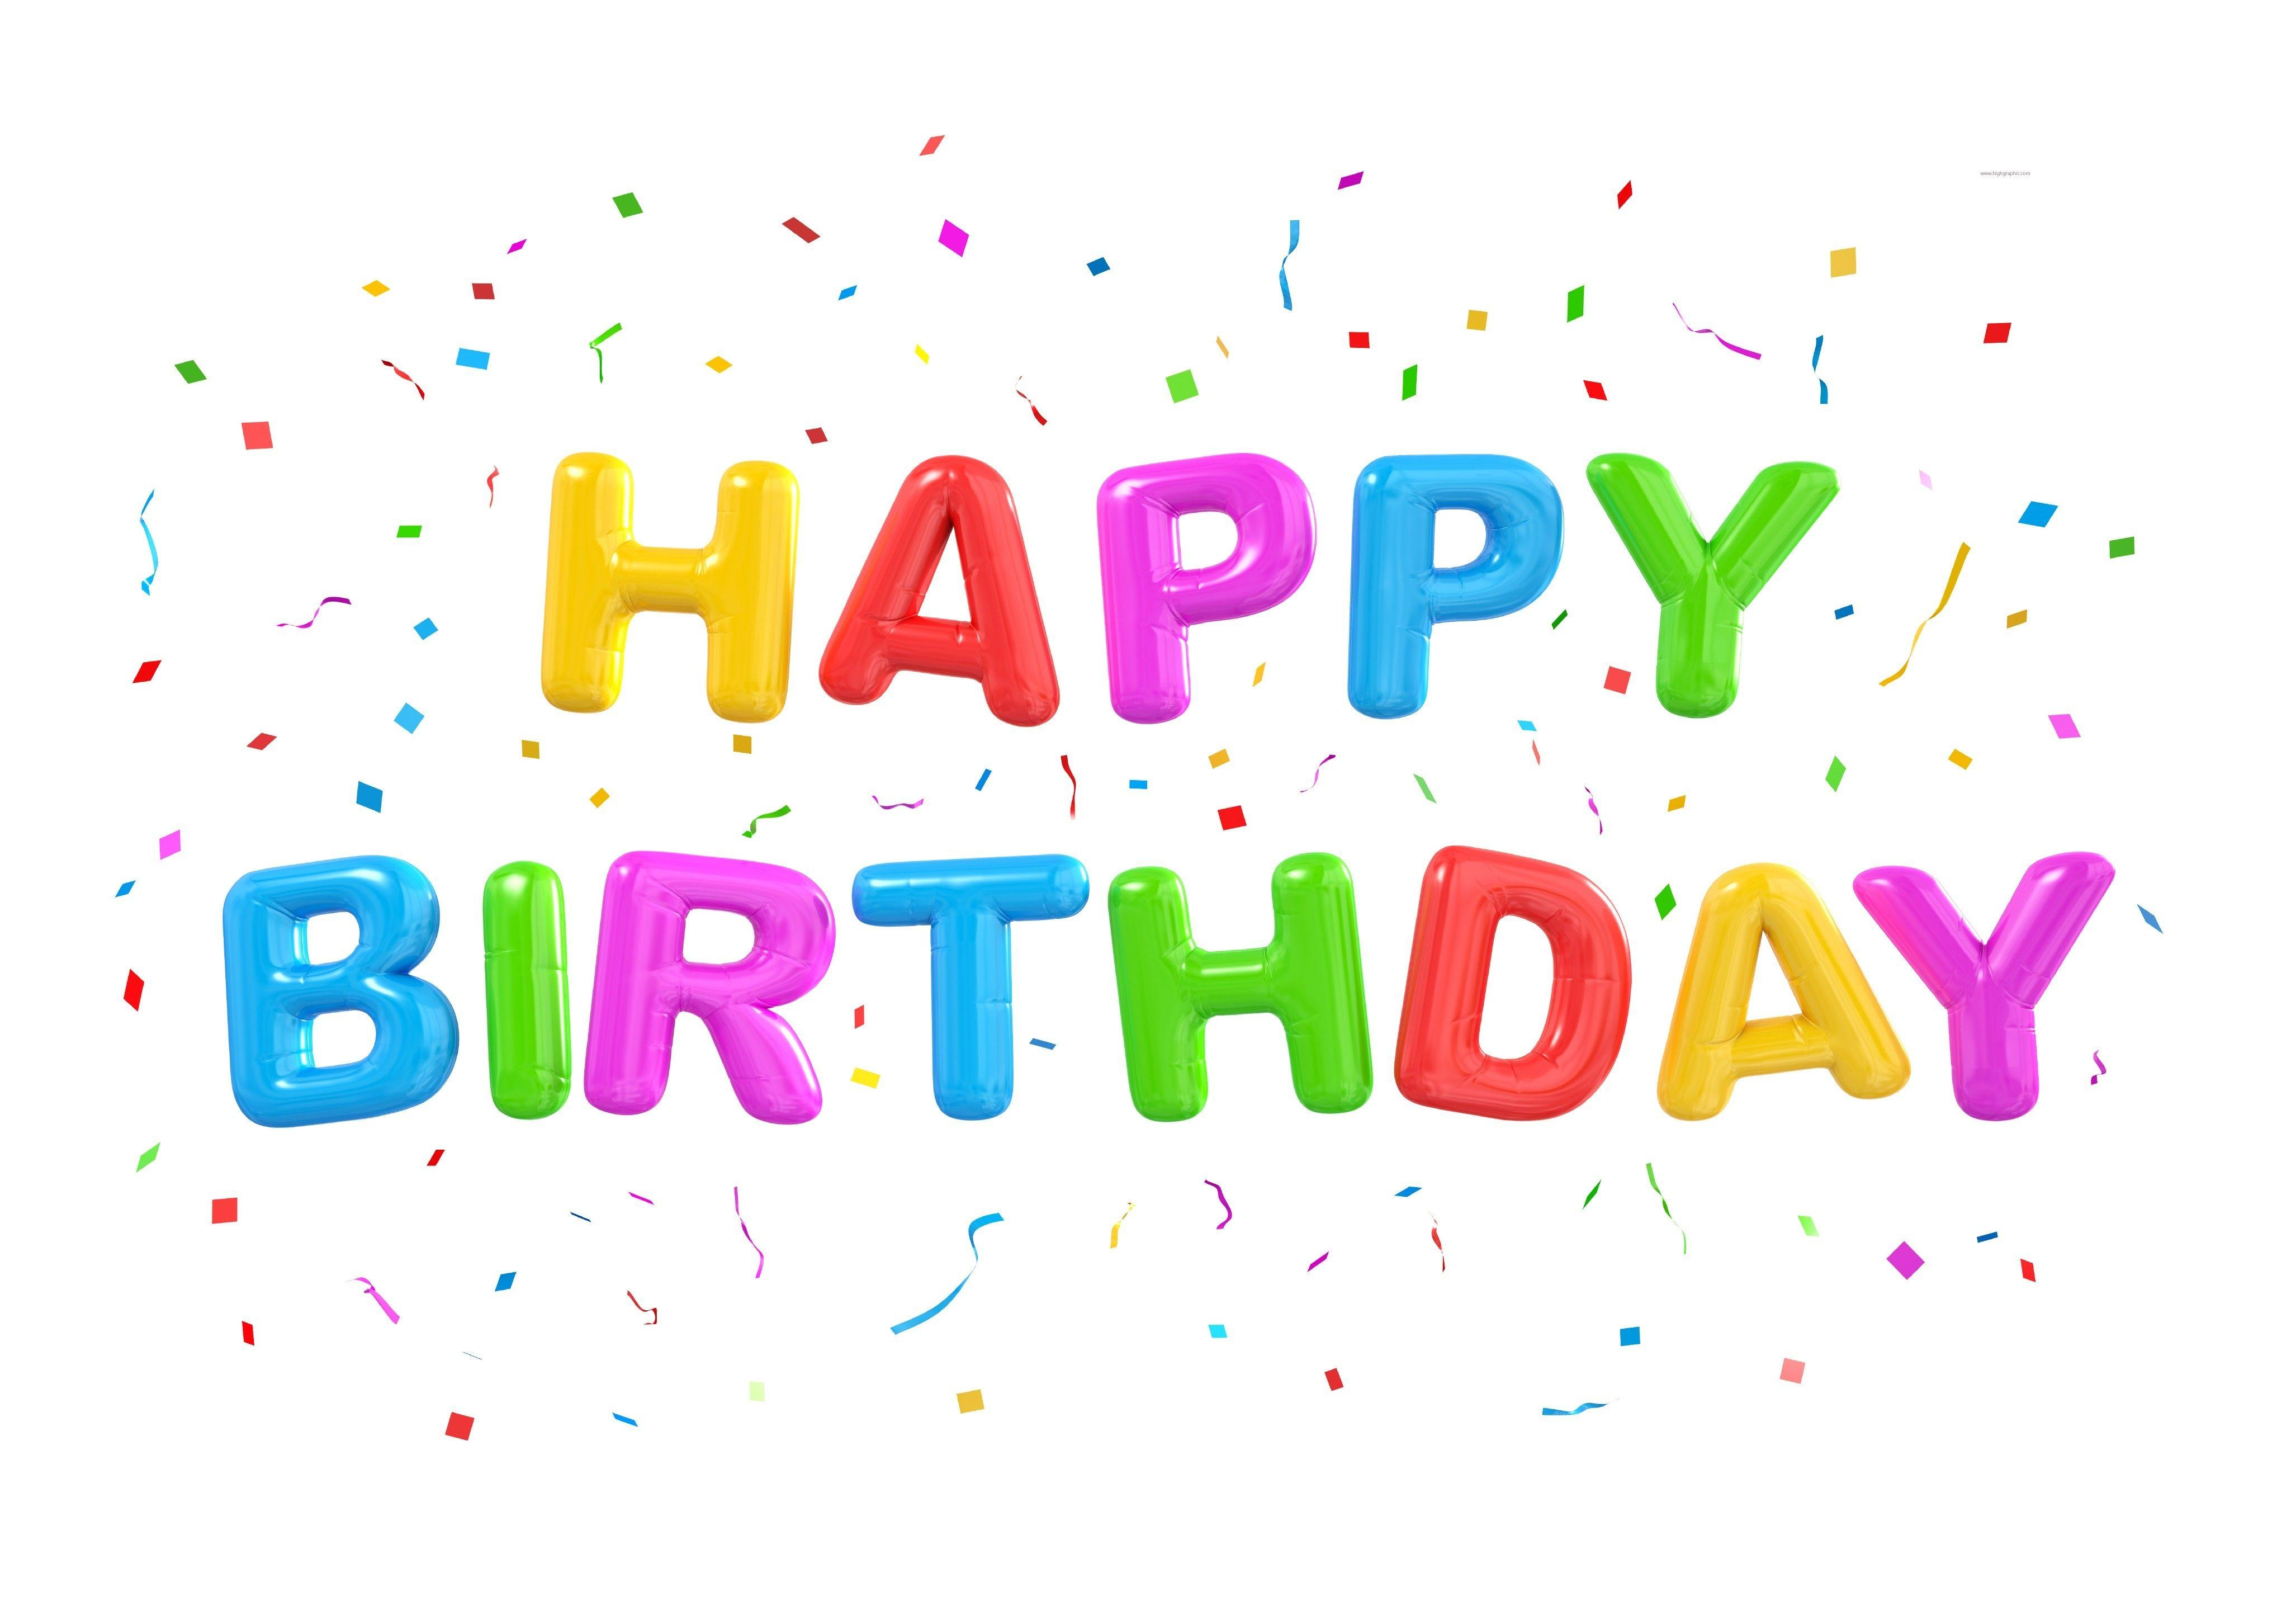 Free happy birthday wallpapers wallpaper cave - Zedge happy birthday wallpapers ...